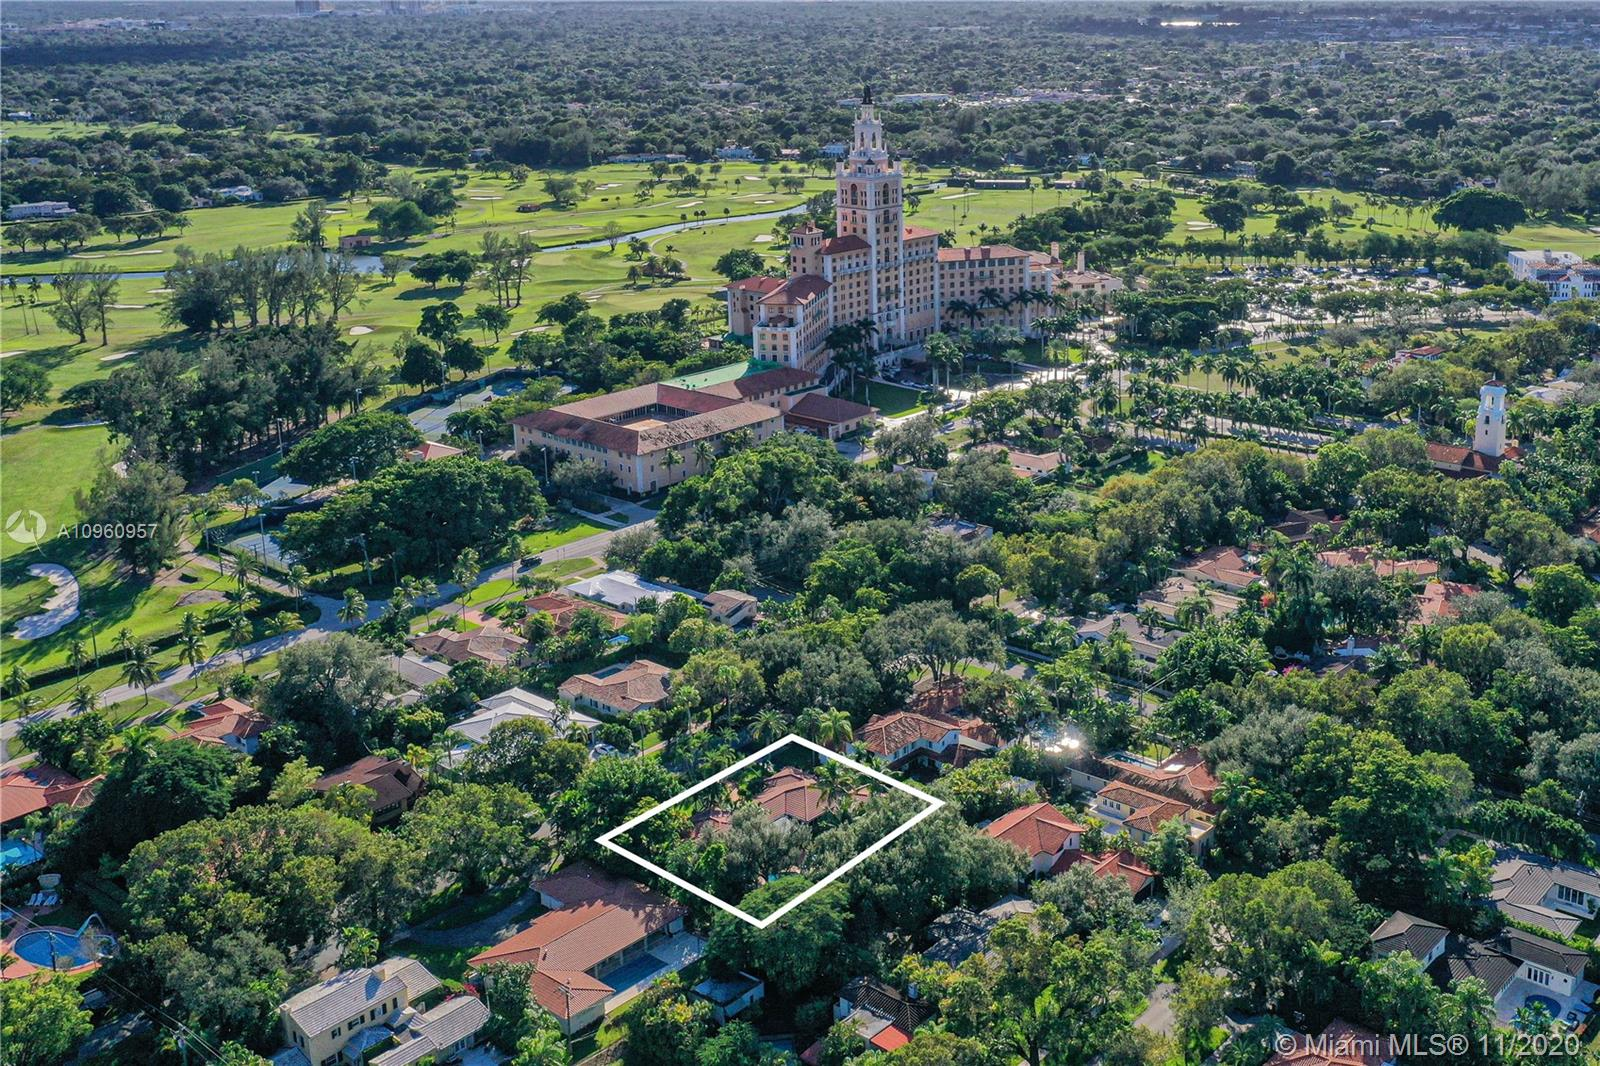 This beloved home is an incredible opportunity to live in paradise! This well-appointed home is one of the most unique properties in Coral Gables,  Almost half an acre of land, it is located steps away from the historic Biltmore Hotel and the adjacent tennis center and golf course. The landscaping created a green oasis, featuring a canopy under a majestic oak tree, and an impressive variety of palms and flowering plants.   This home is the perfect spot for outdoor entertaining, under the covered patio overlooking the gardens and pool. You are greeted by its gleaming red oak floors, and a spectacular open-floor plan. Meticulously maintained, this classic home is a rare gem in a perfect neighborhood! Must see this home to appreciate it. See the virtual tour, then call for your private tour